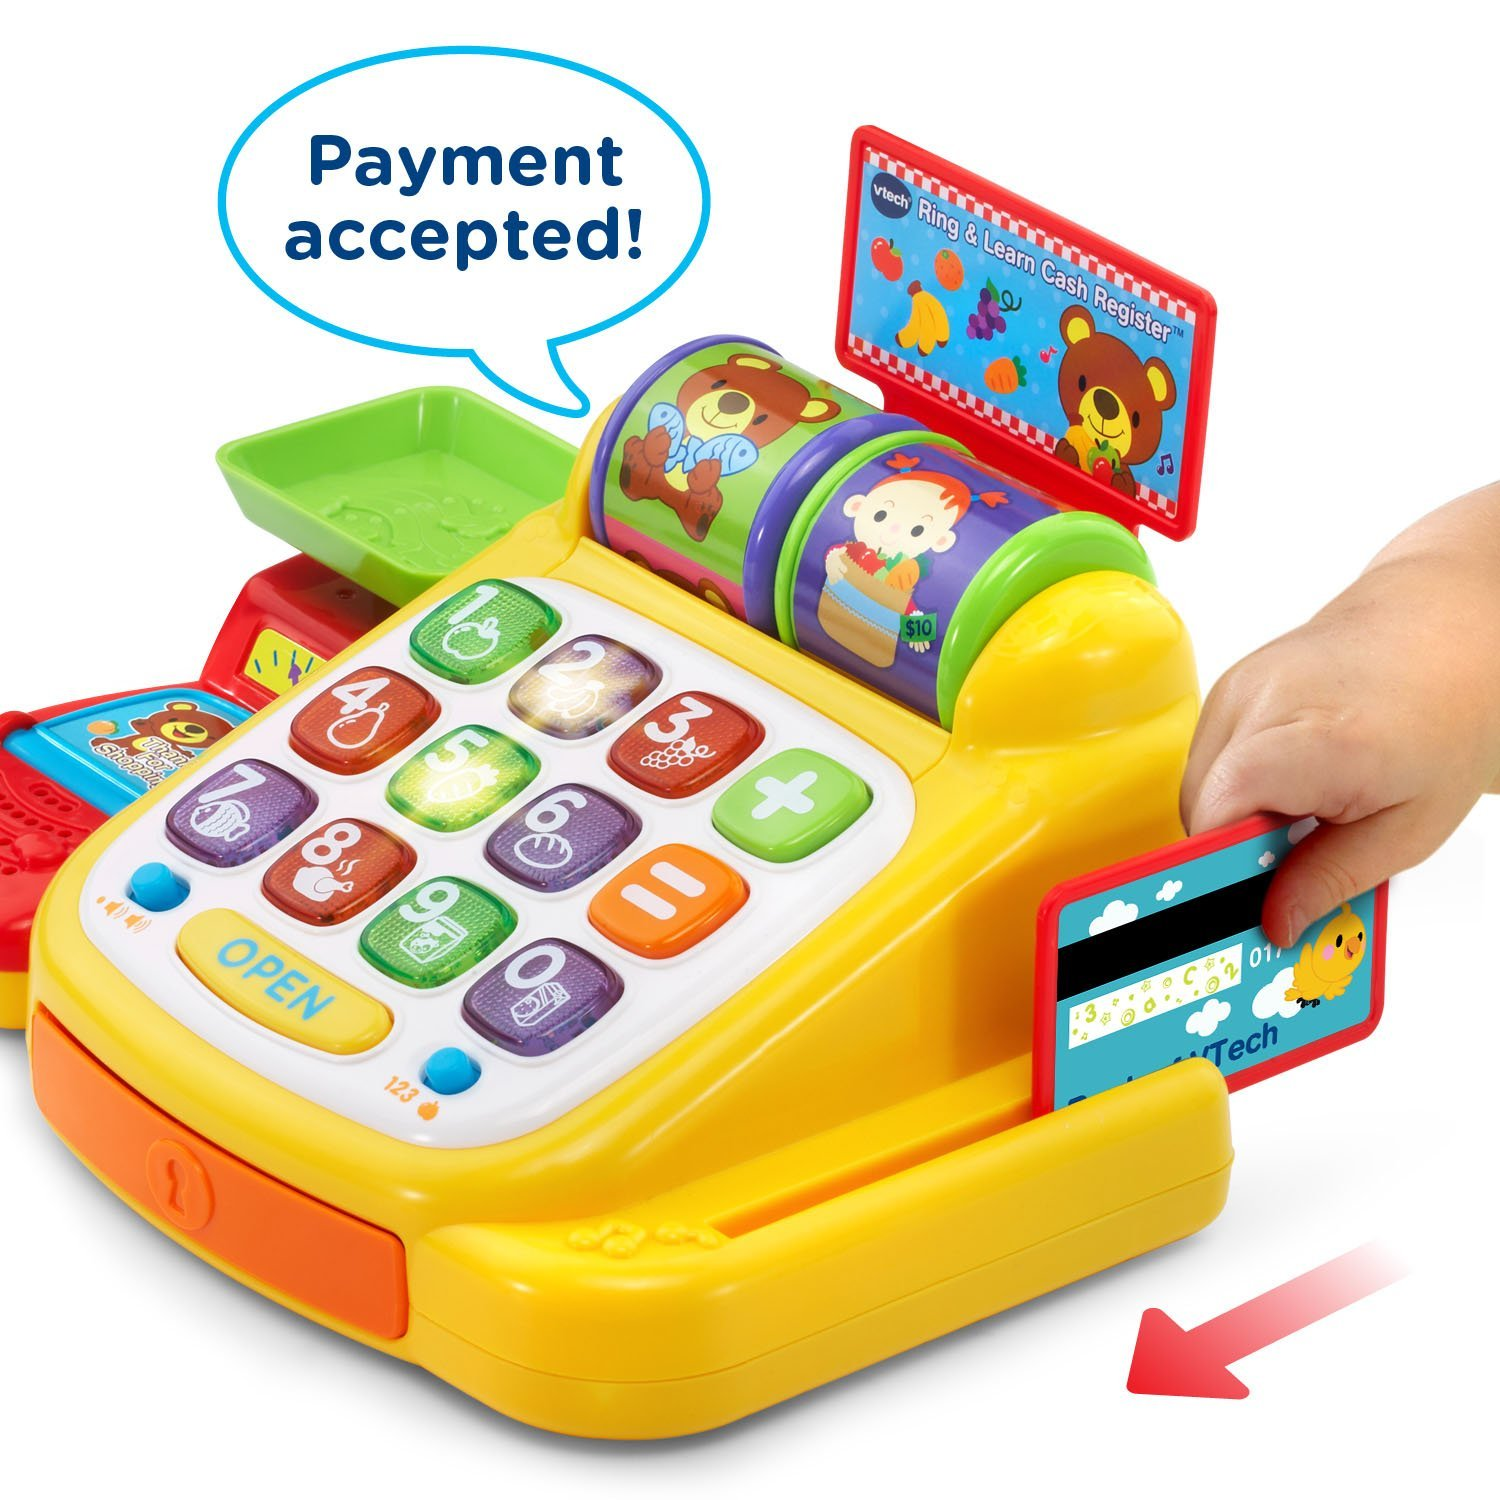 Little tikes cash register - Little Tikes Cash Register 34